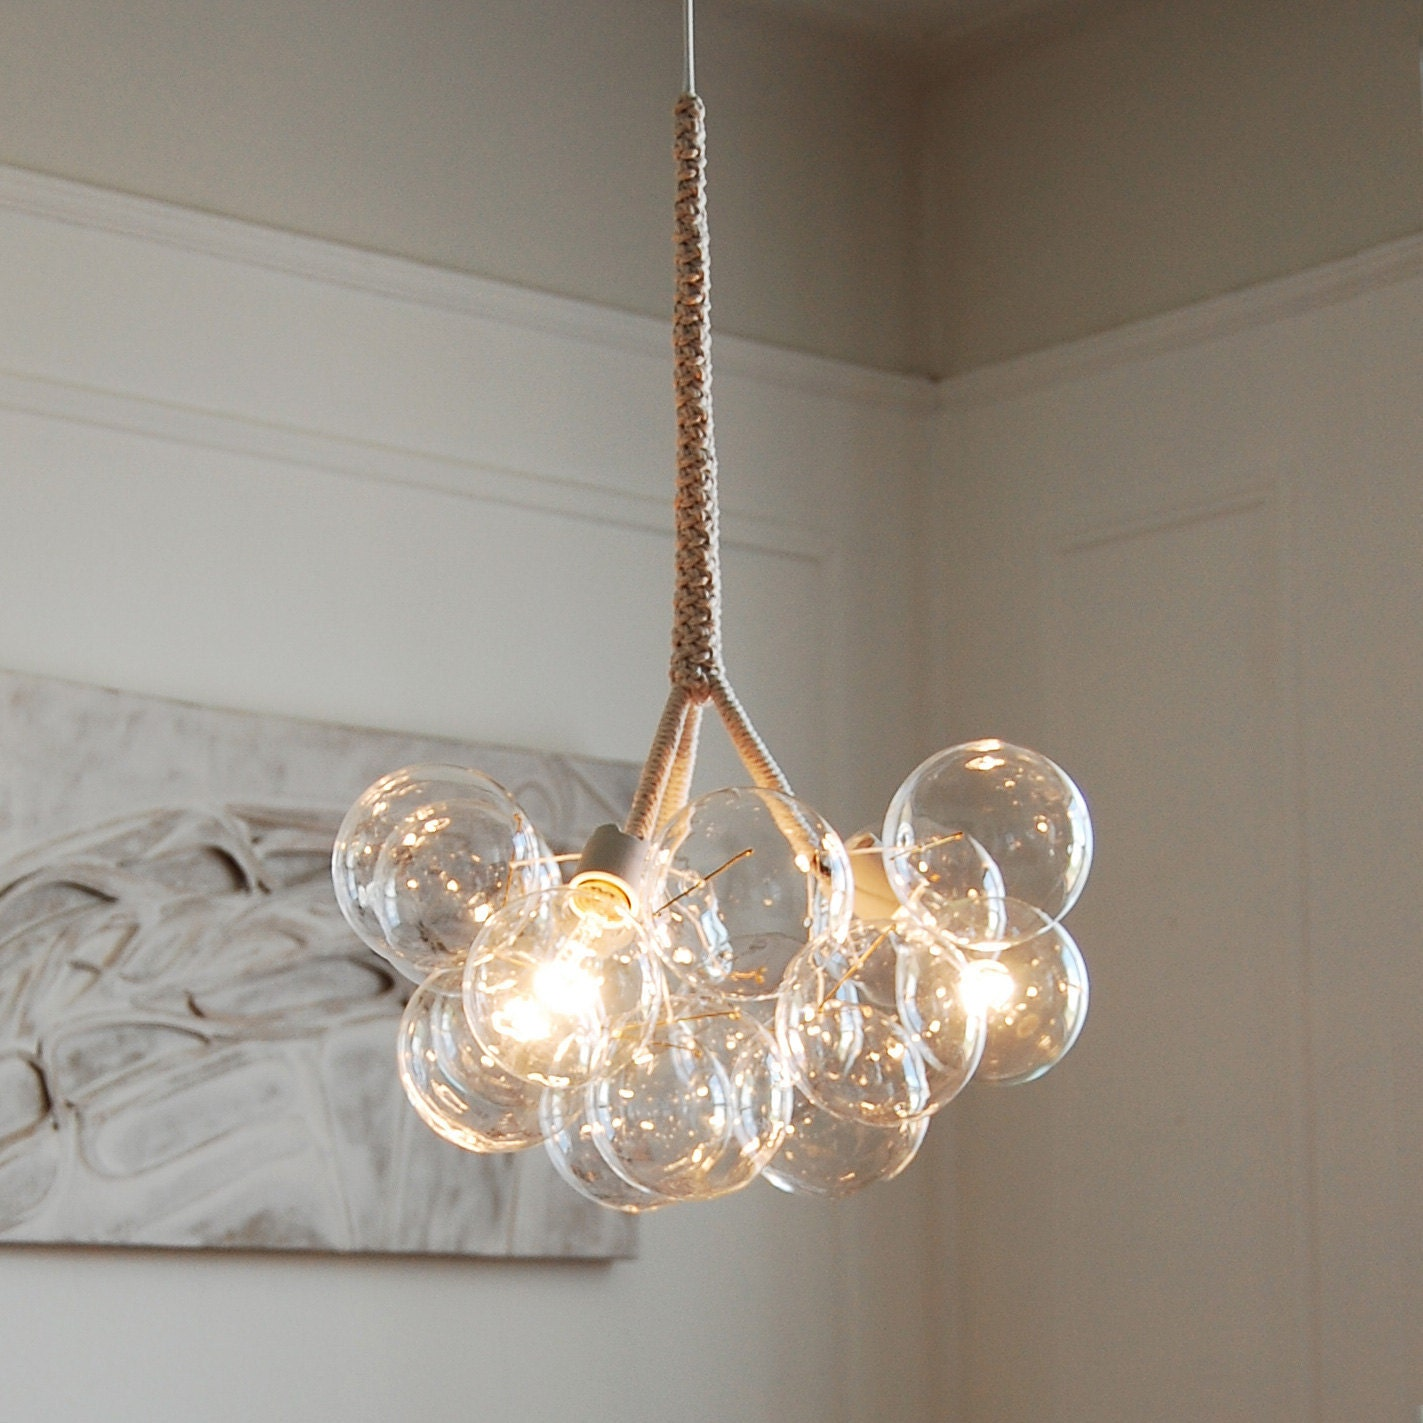 The Original Medium Bubble Chandelier by PELLE by jeanpelle from etsy.com